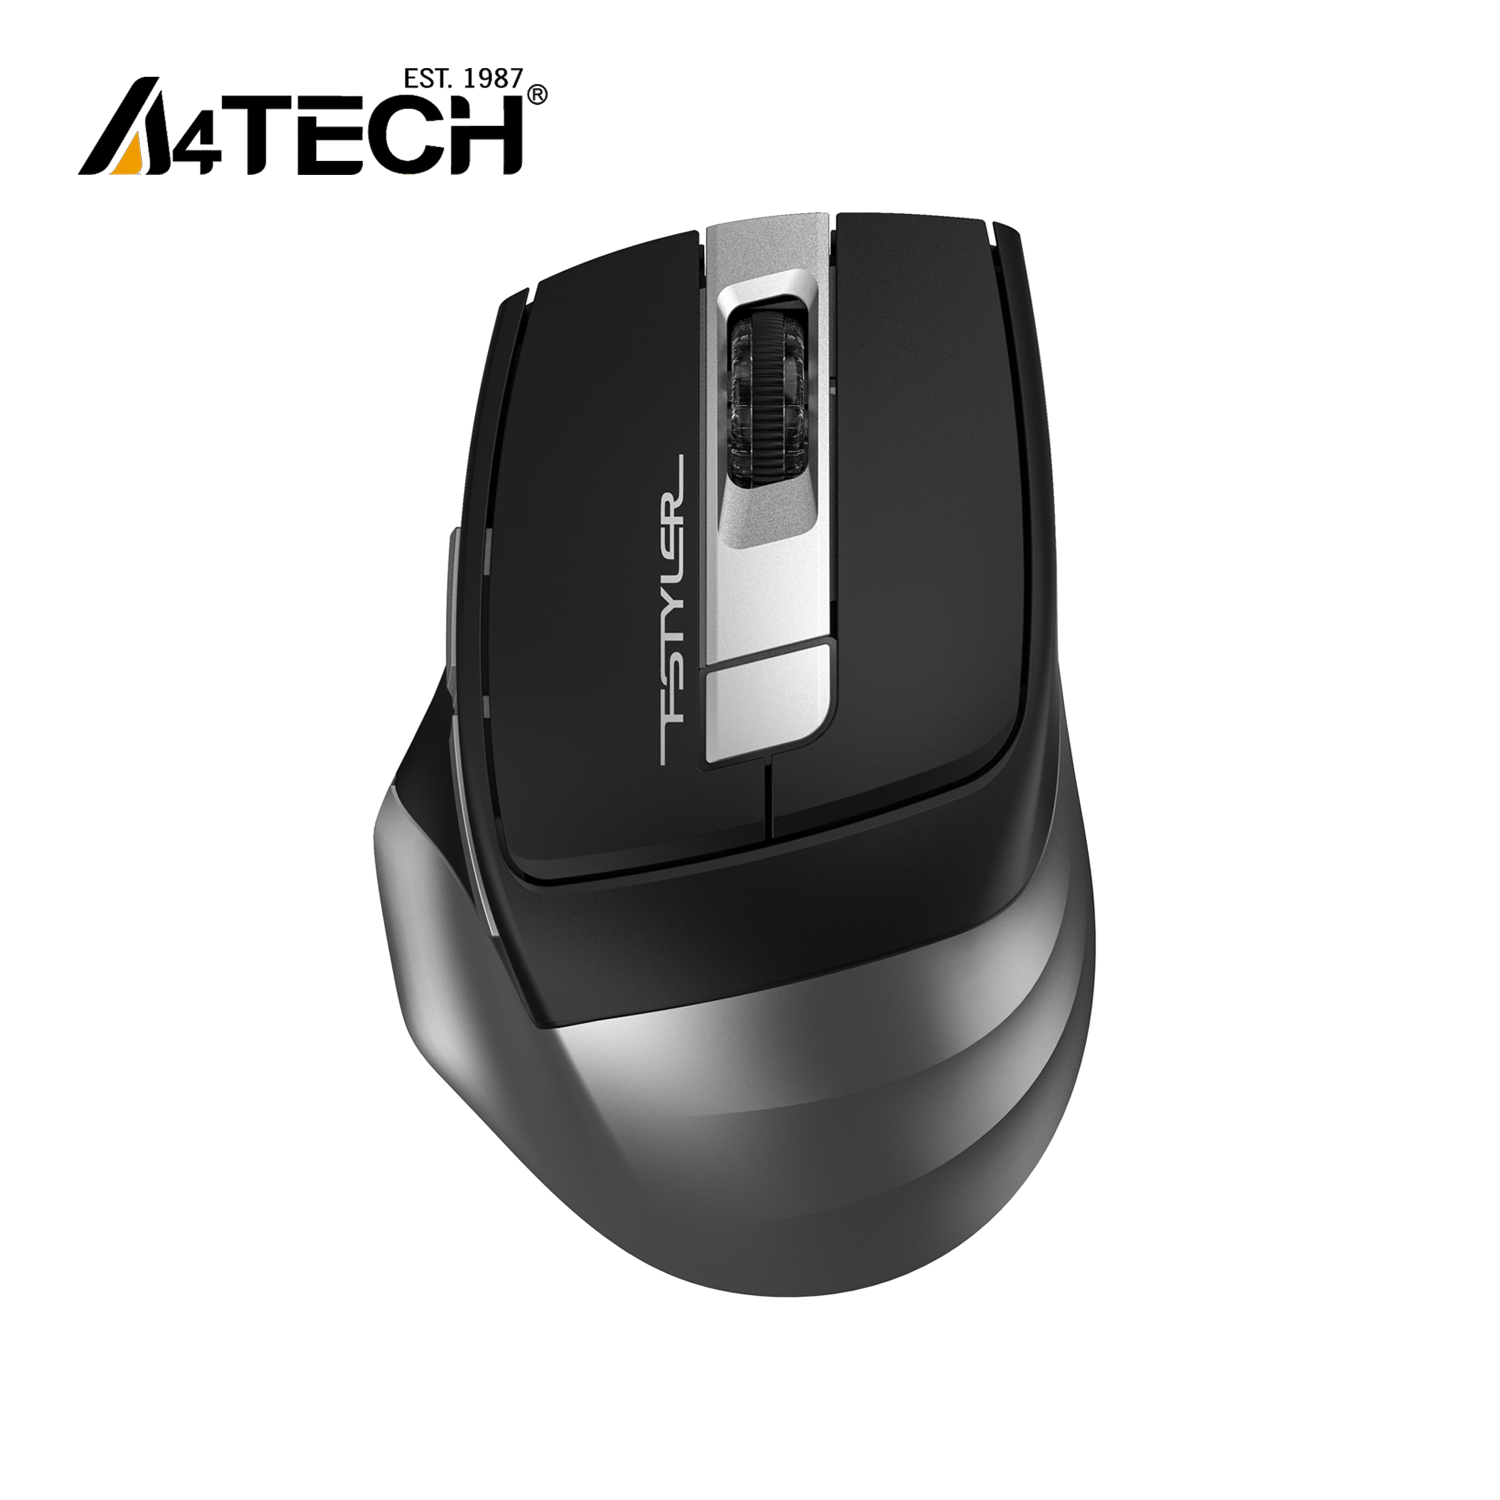 A4Tech FB35S - FSTYLER- Bluetooth & 2.4G Mouse - Silent Clicks - 2000 DPI - Connects Upto 3 Devices - For PC/Laptop/Tablet/Smart TV